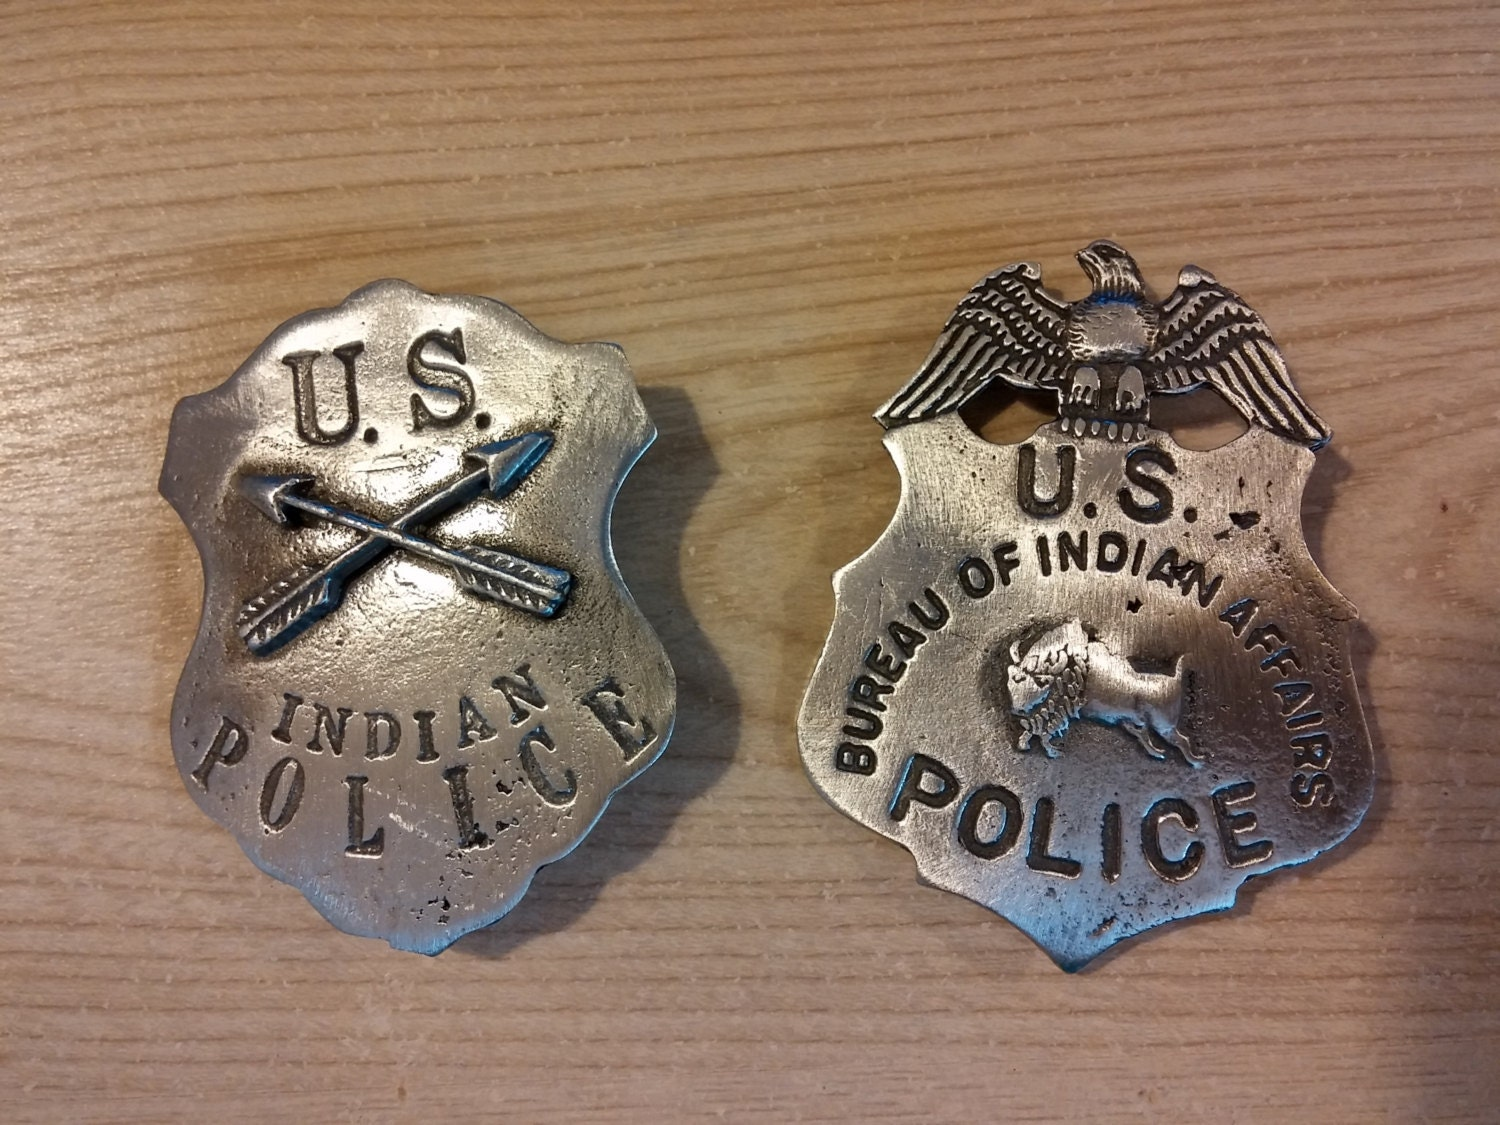 indian police and u s bureau of indian affairs badge with pin. Black Bedroom Furniture Sets. Home Design Ideas